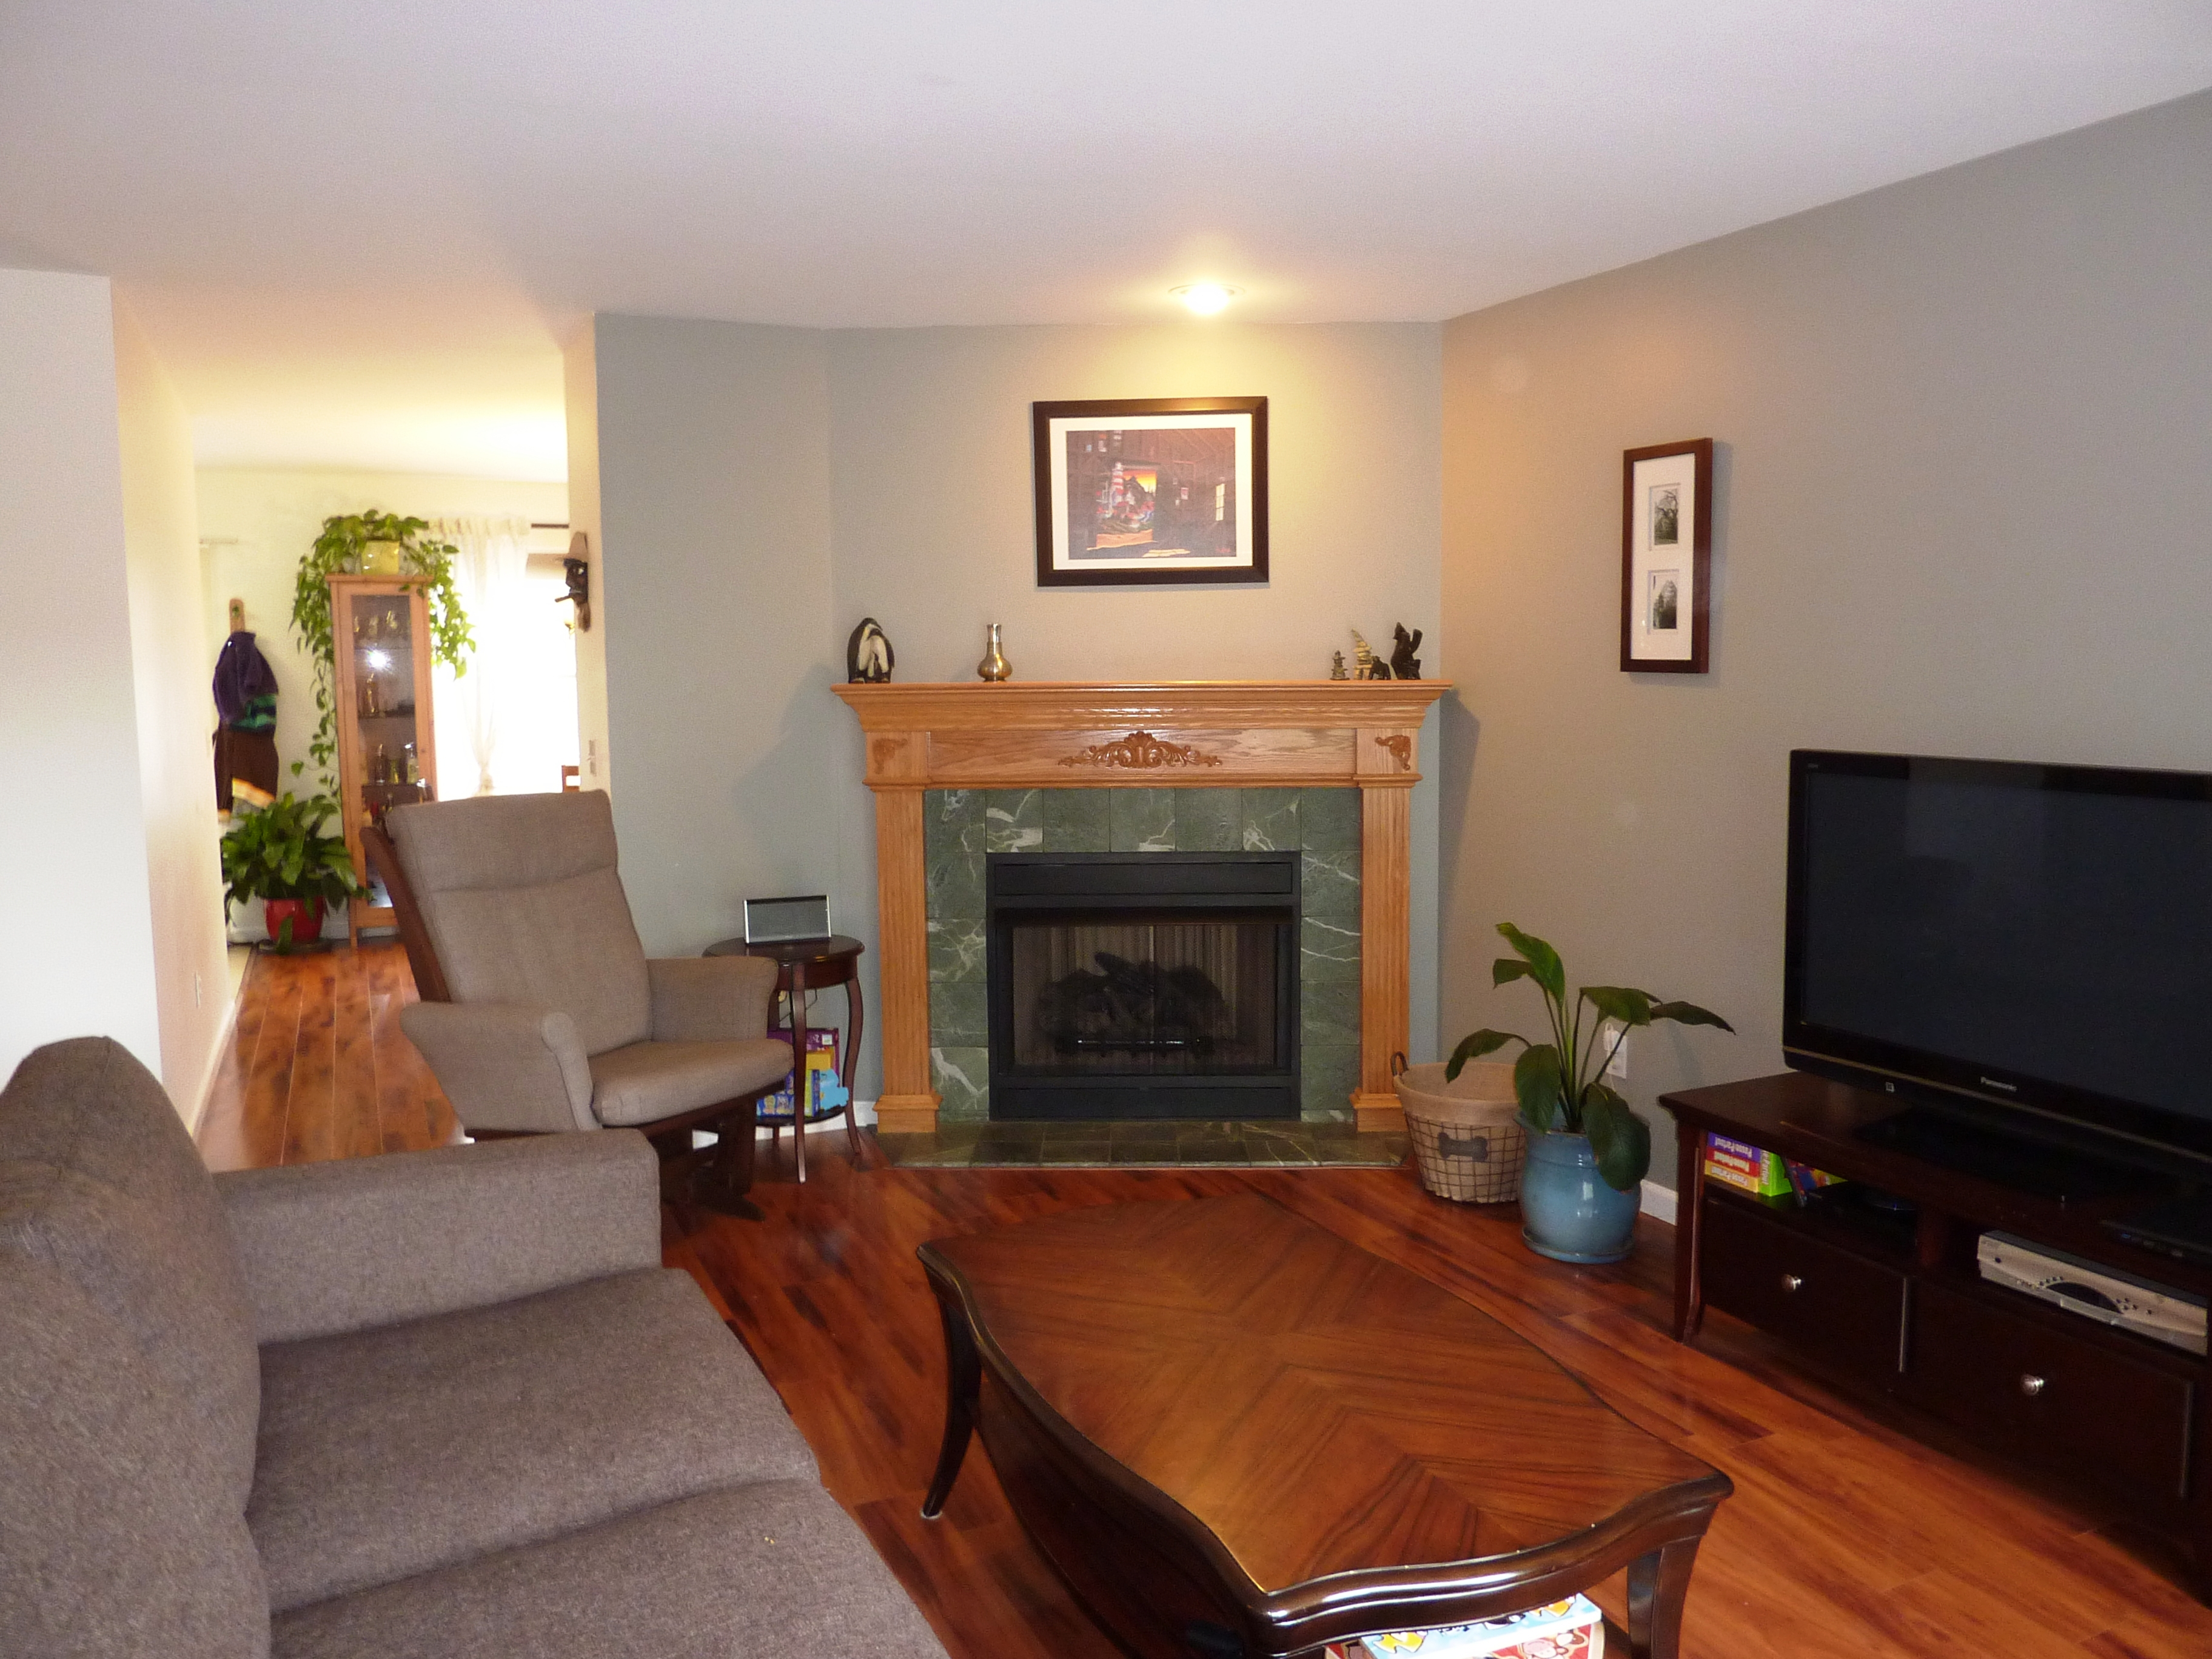 Townhouse for Sale at Updated End Unit 11 Mannions Lane 1 Danbury, Connecticut, 06810 United States